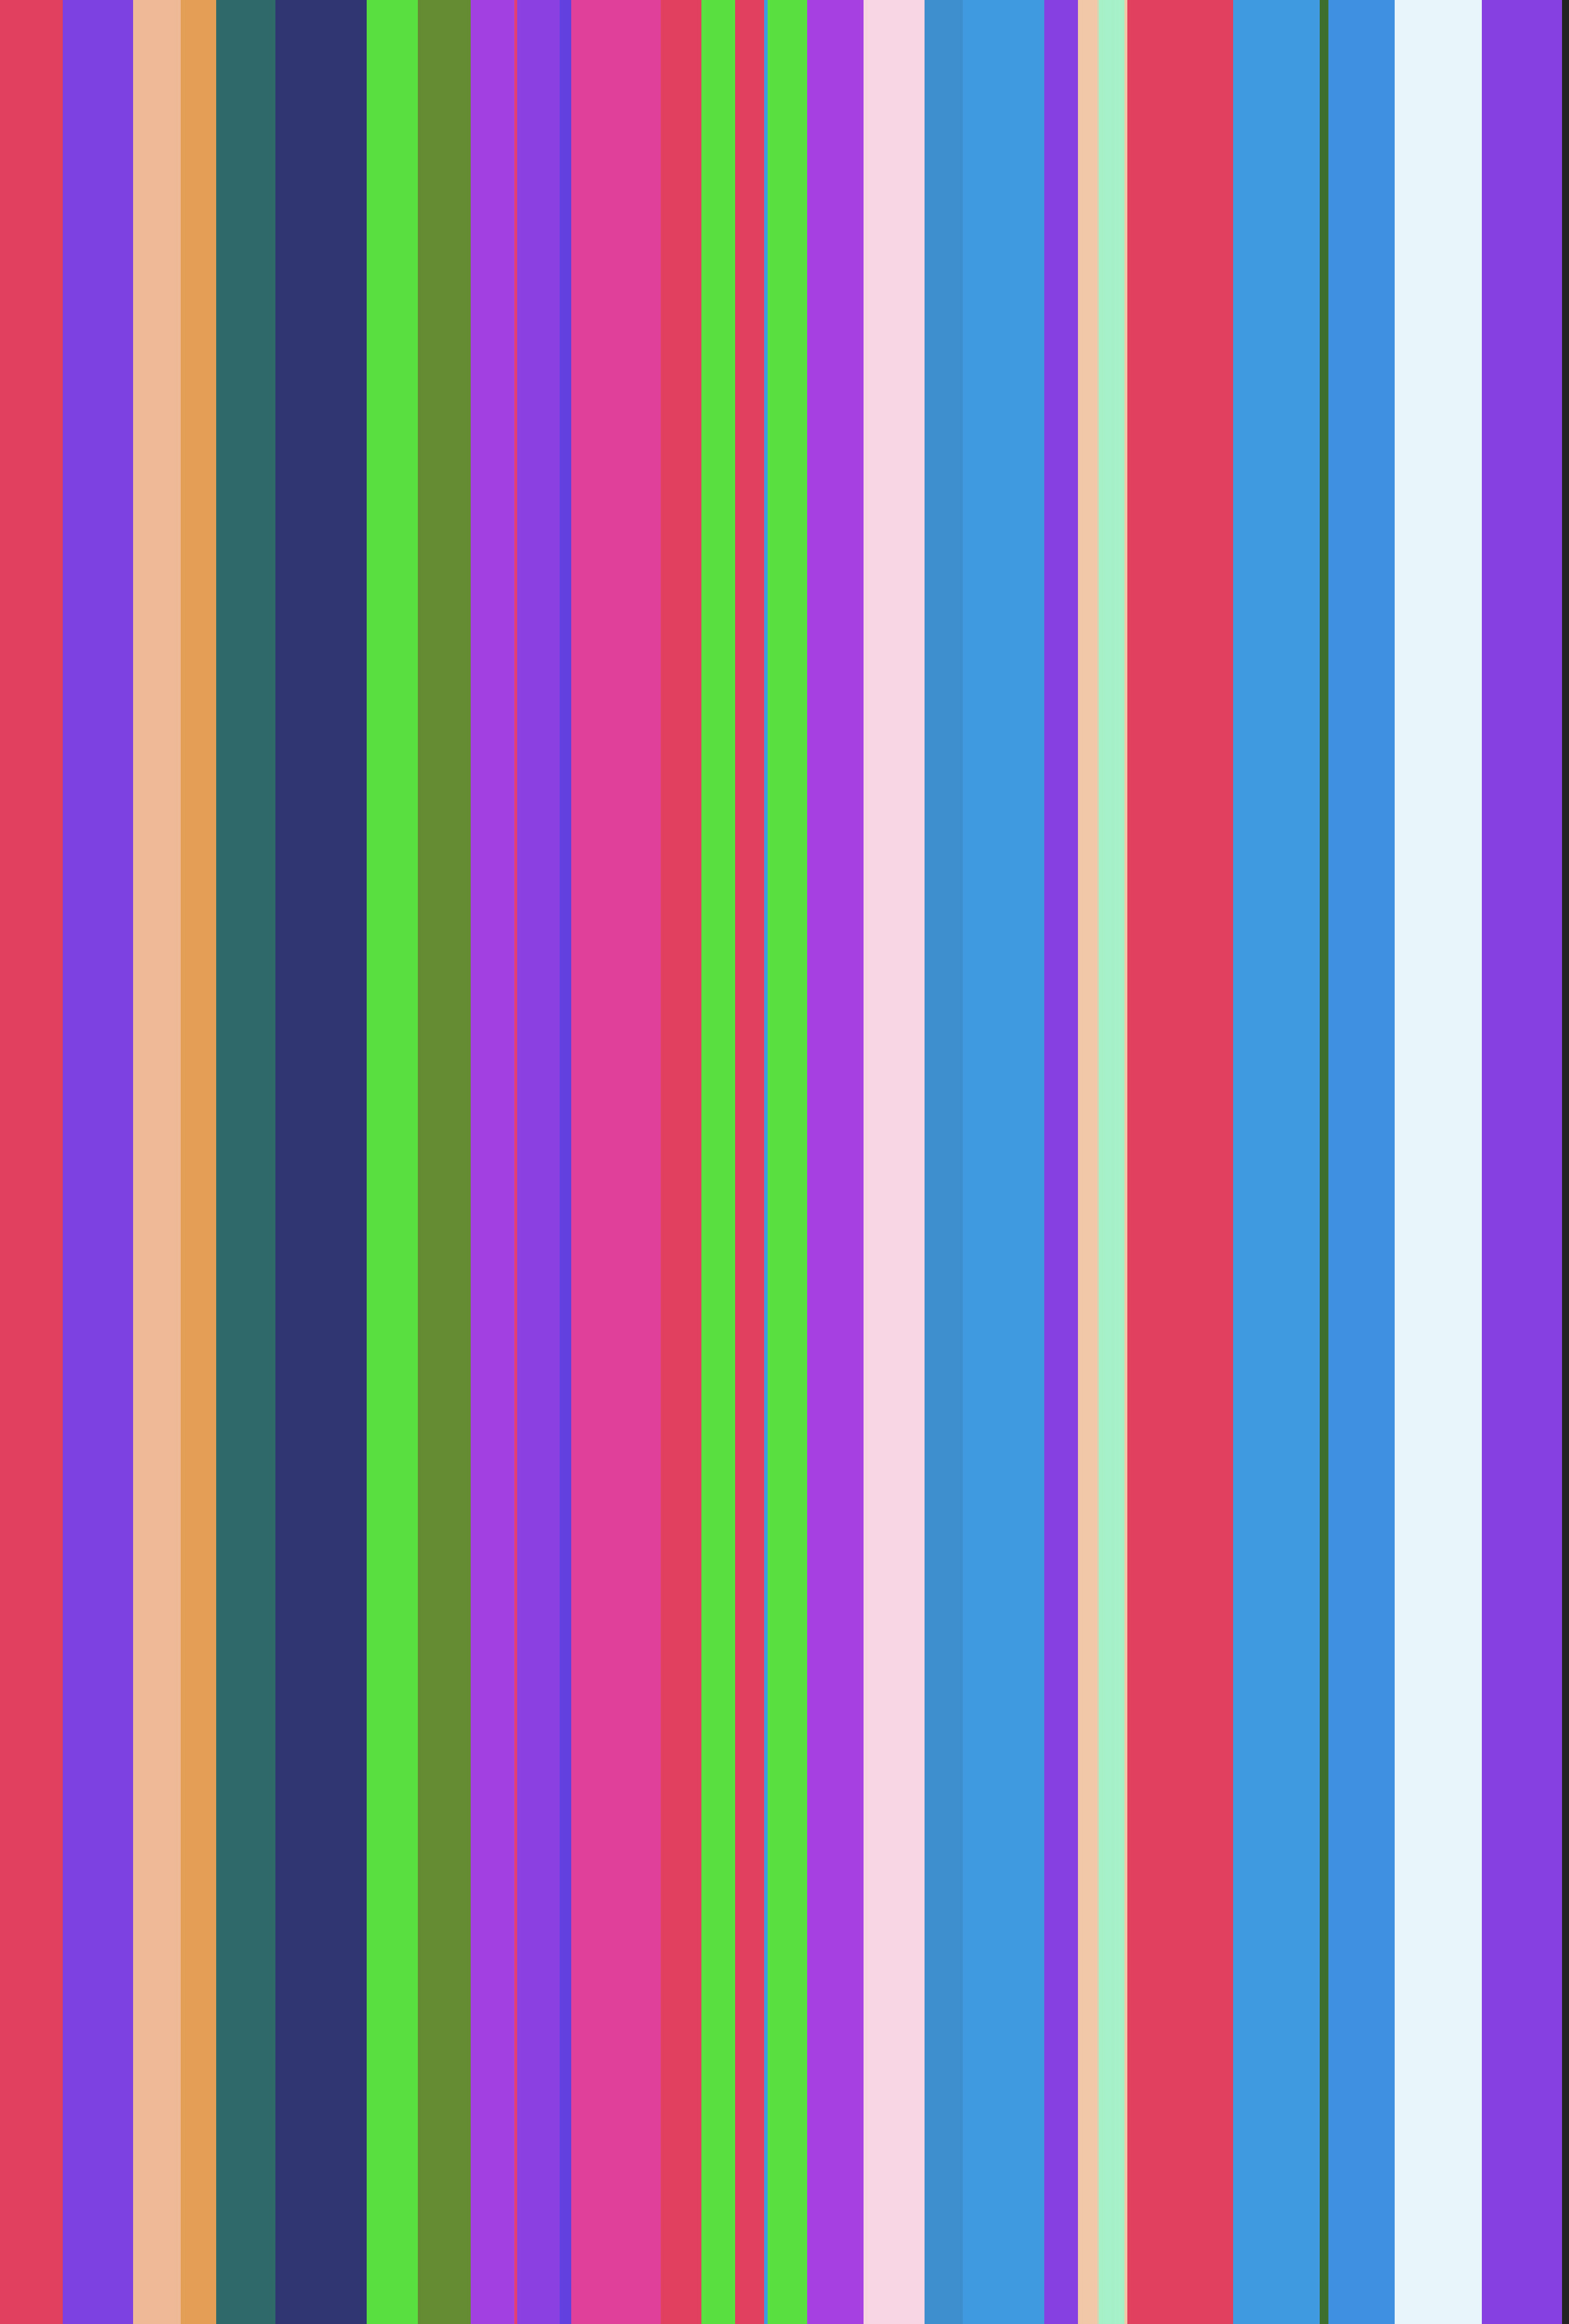 background of colourful vertical random thinckness lines